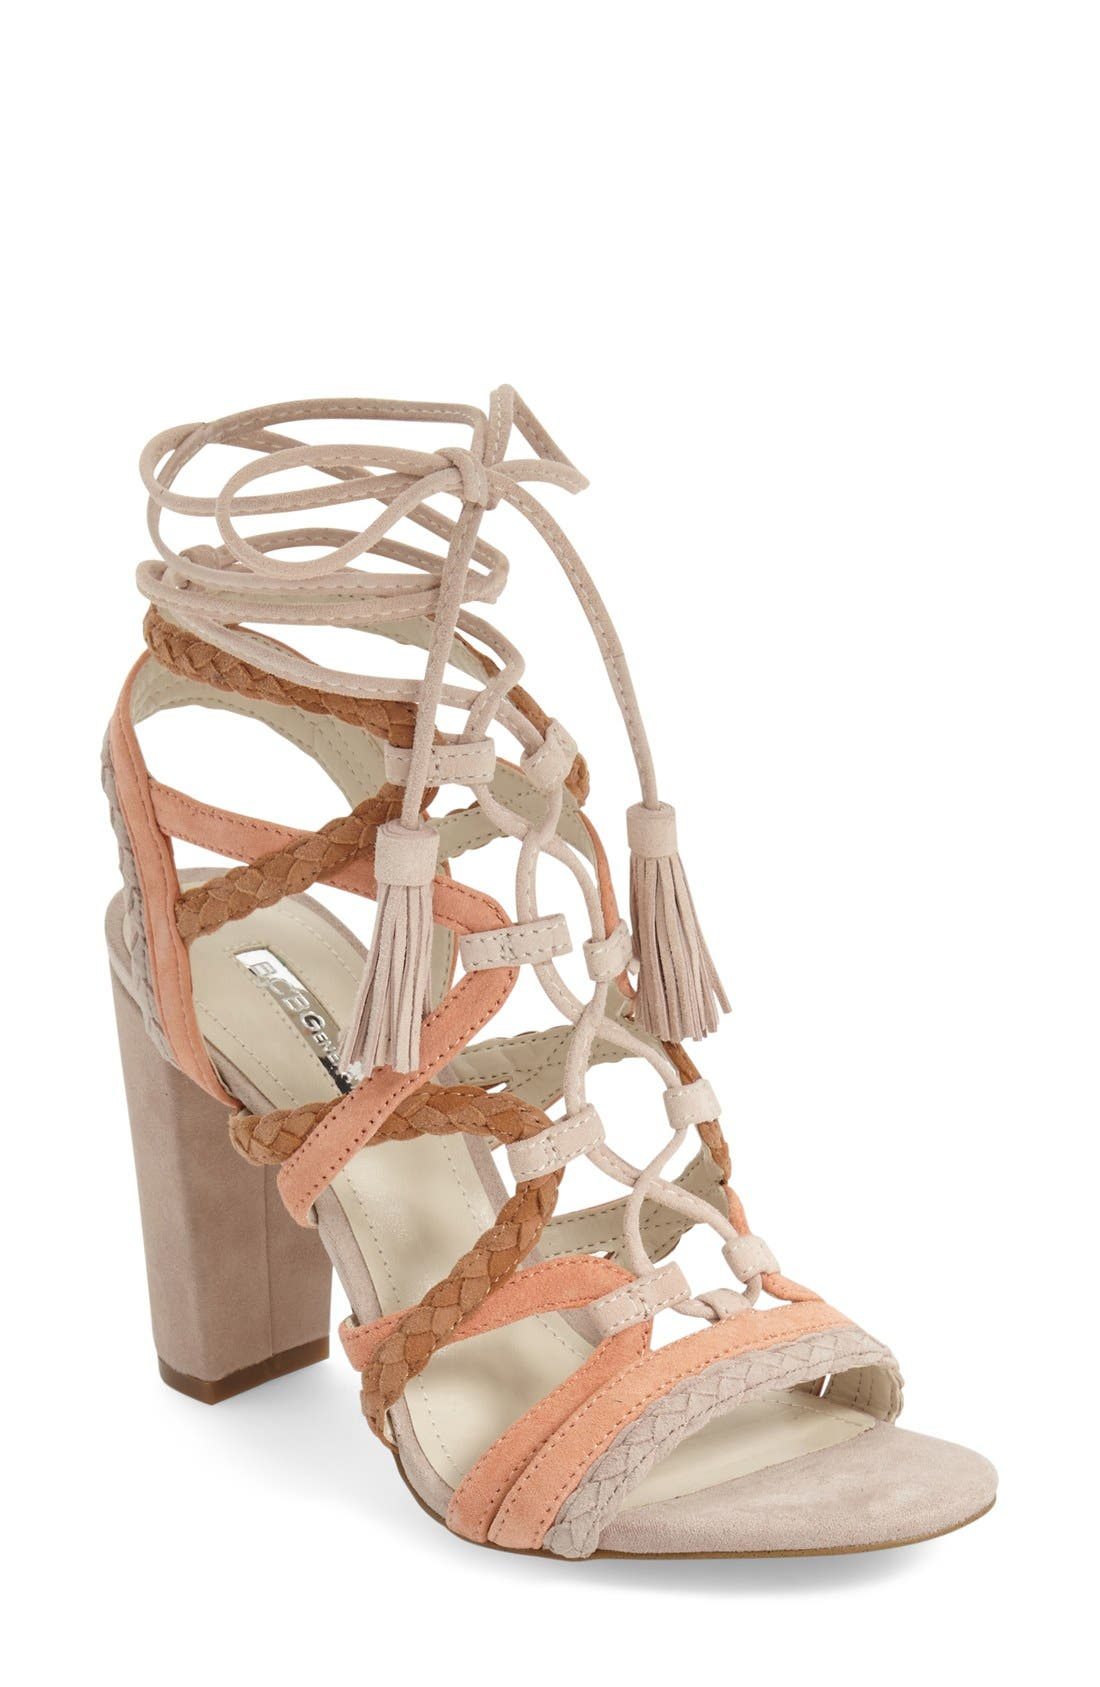 Alternate Image 1 Selected - BCBGeneration 'Ronny' Lace-Up Sandal (Women)